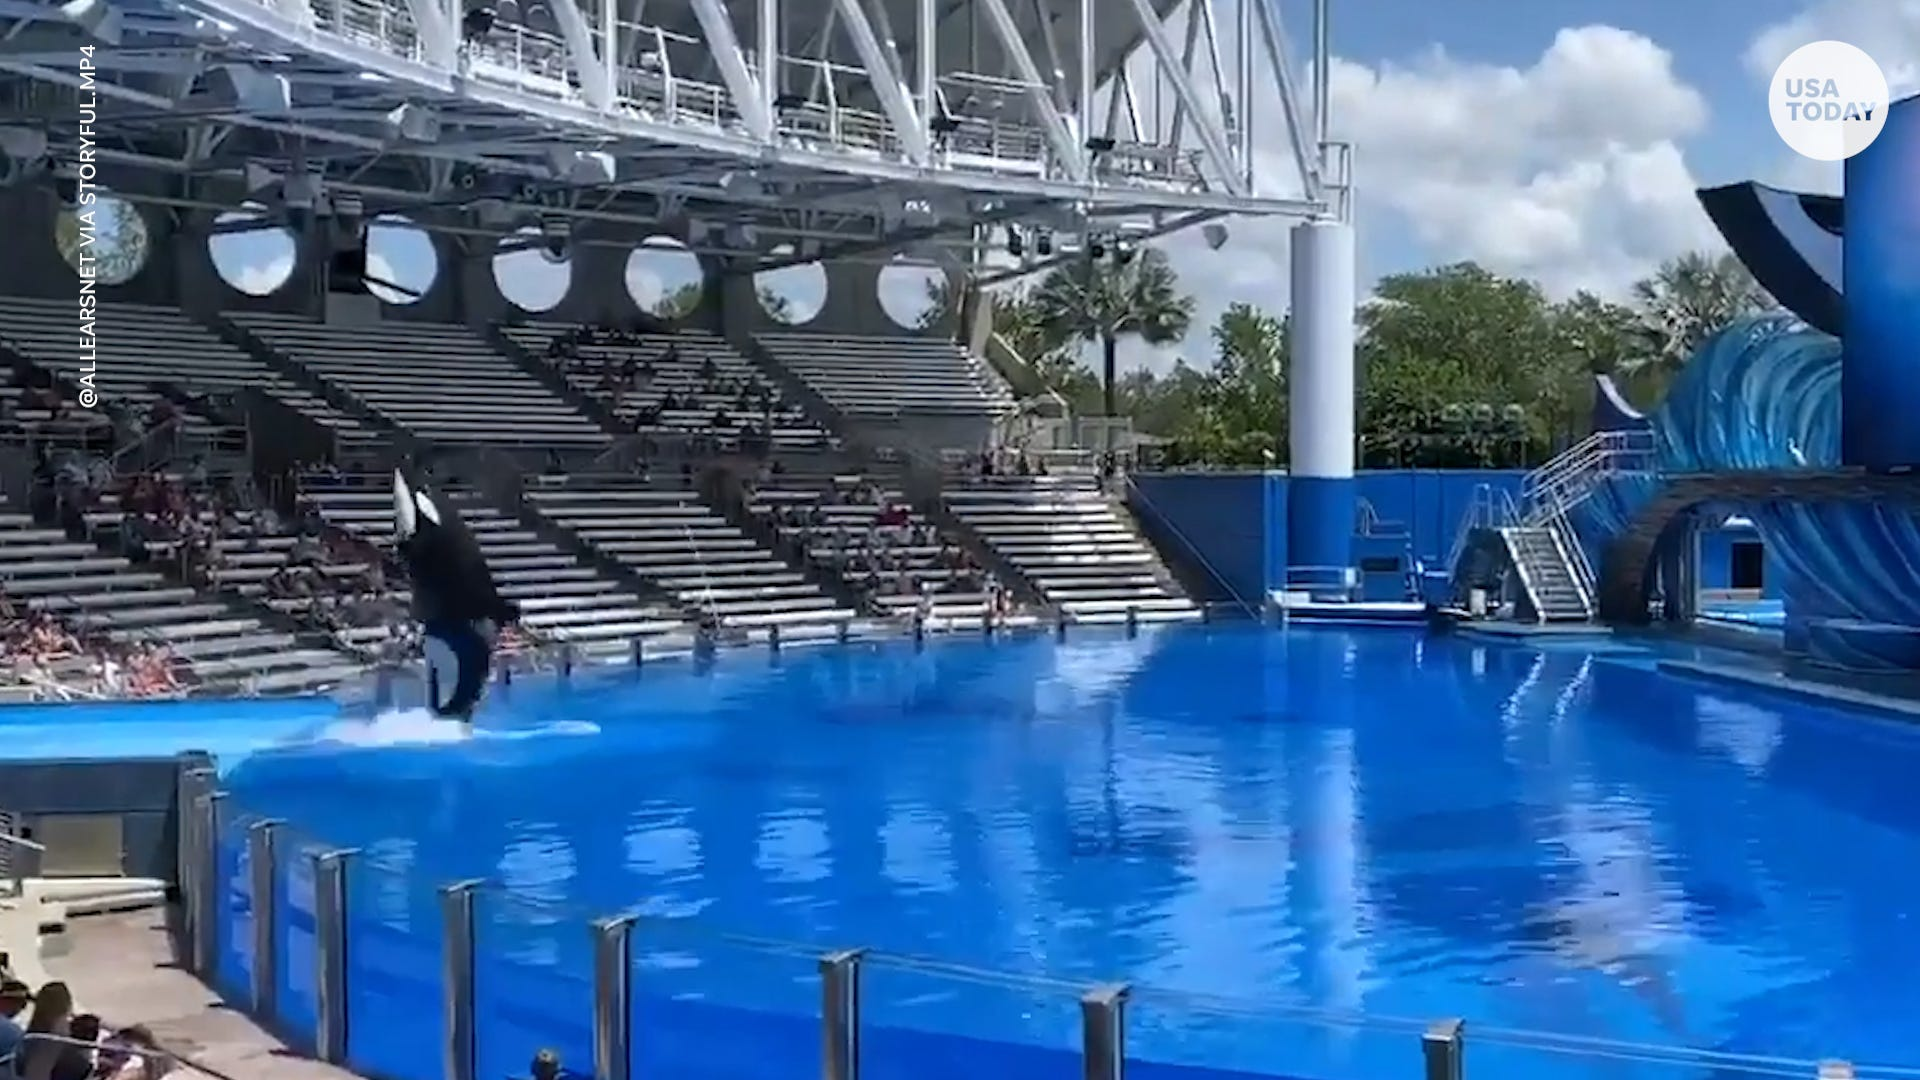 SeaWorld Orlando reopens with new guidelines after being closed for months